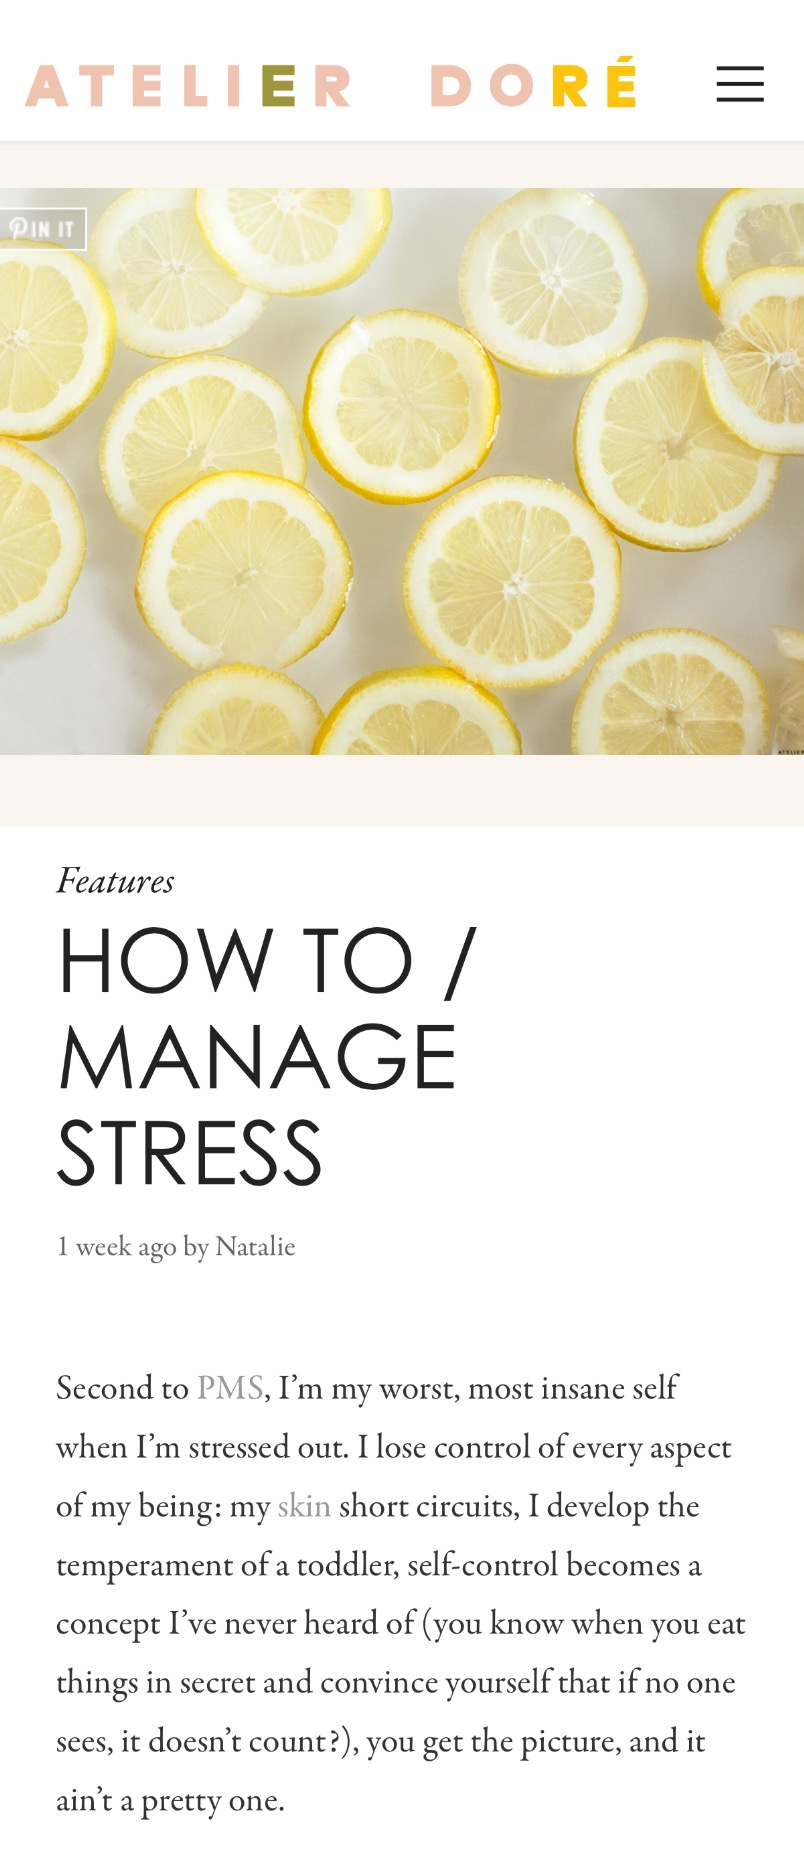 ATELIER DORE : HOW TO / MANAGE STRESS